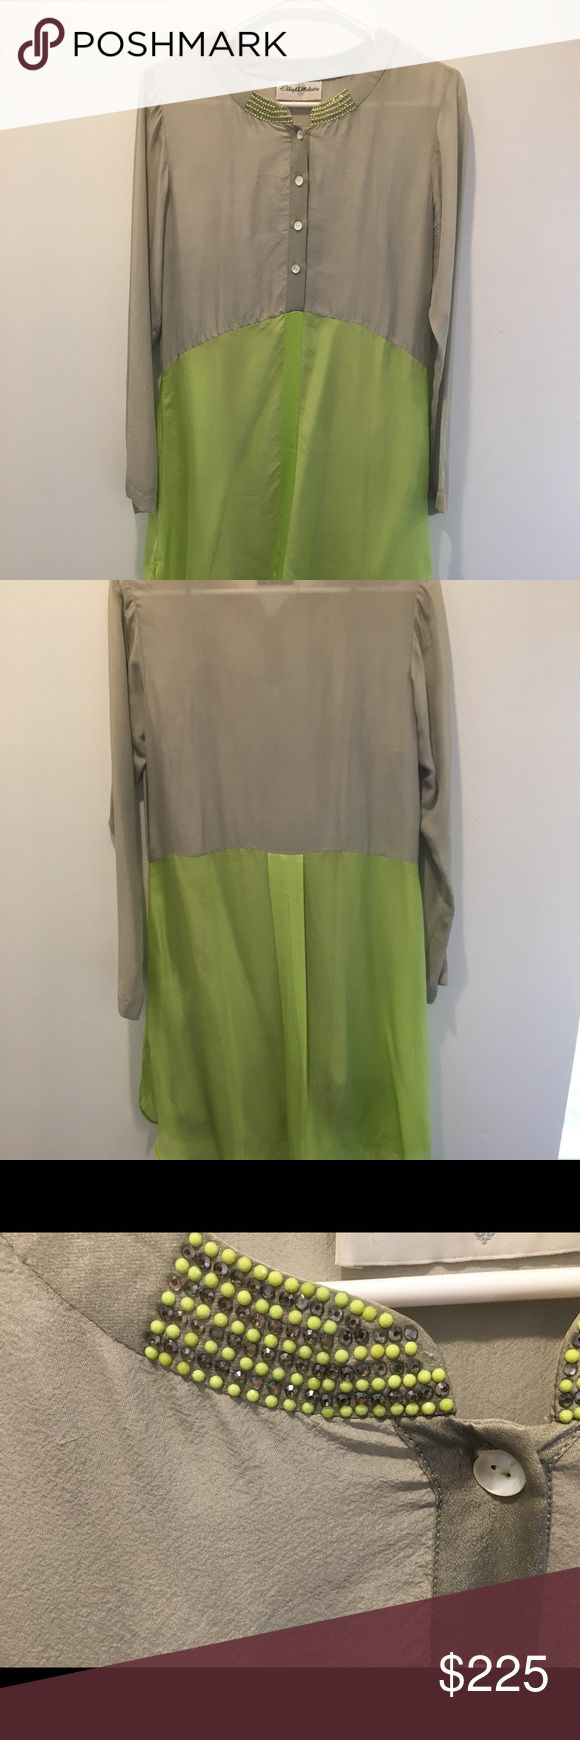 Lime green and Gray shirt dress size medium Sample piece made with chiffon/georgette. Swarovski details on neck. CAM Dresses Long Sleeve